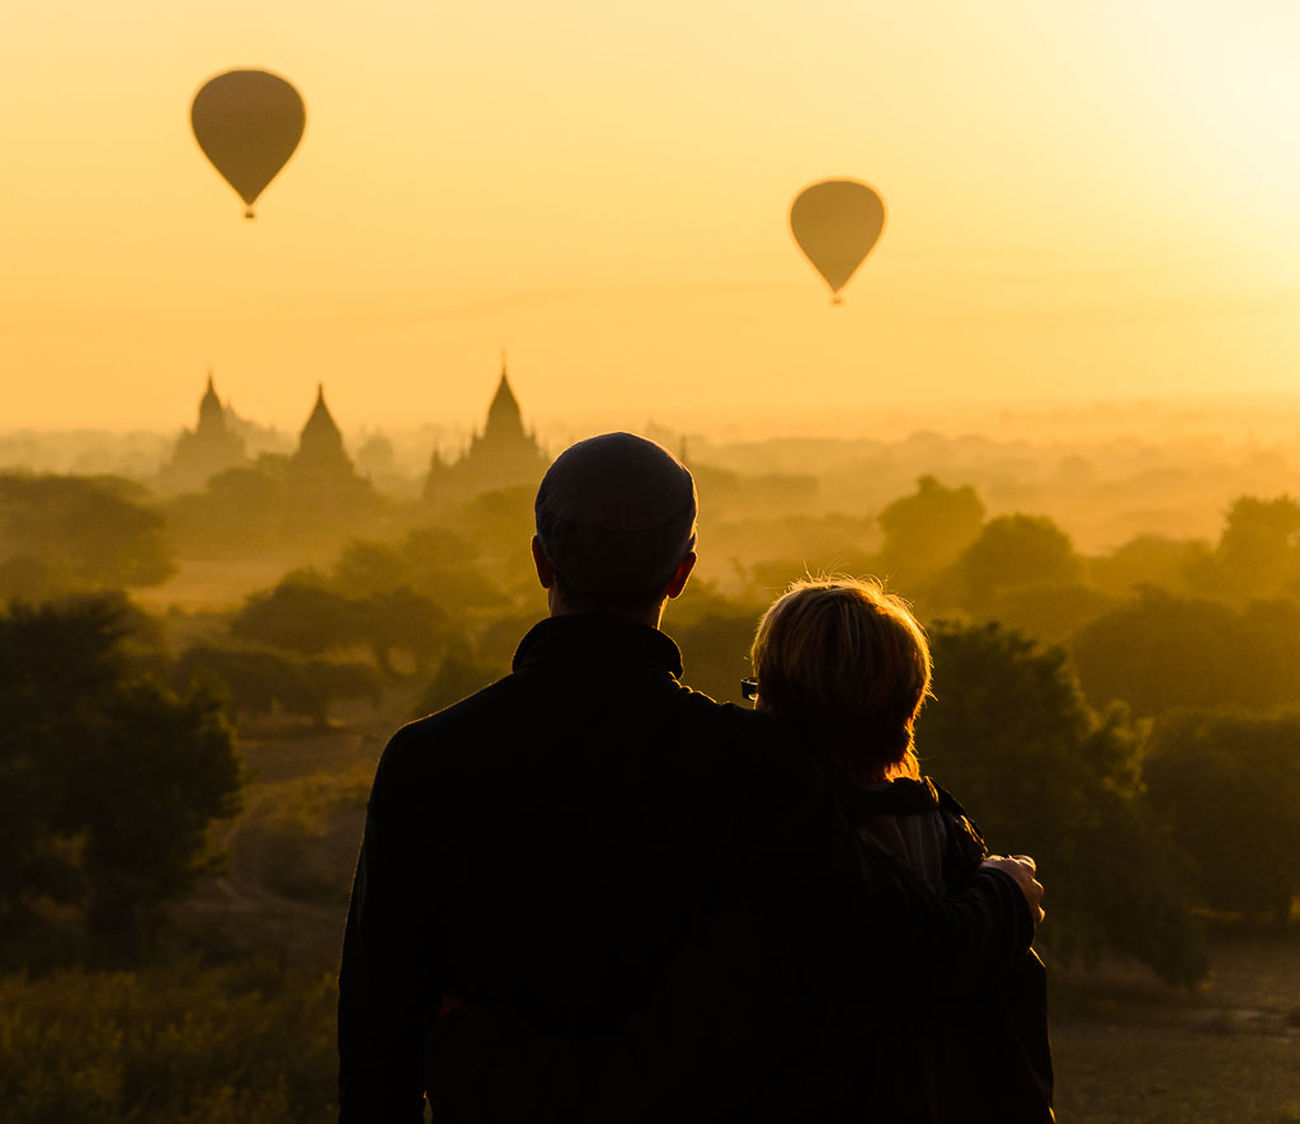 Sunrise in Bagan with my Mom. Sharing Myanmar with her is just incredible! Feel The Journey